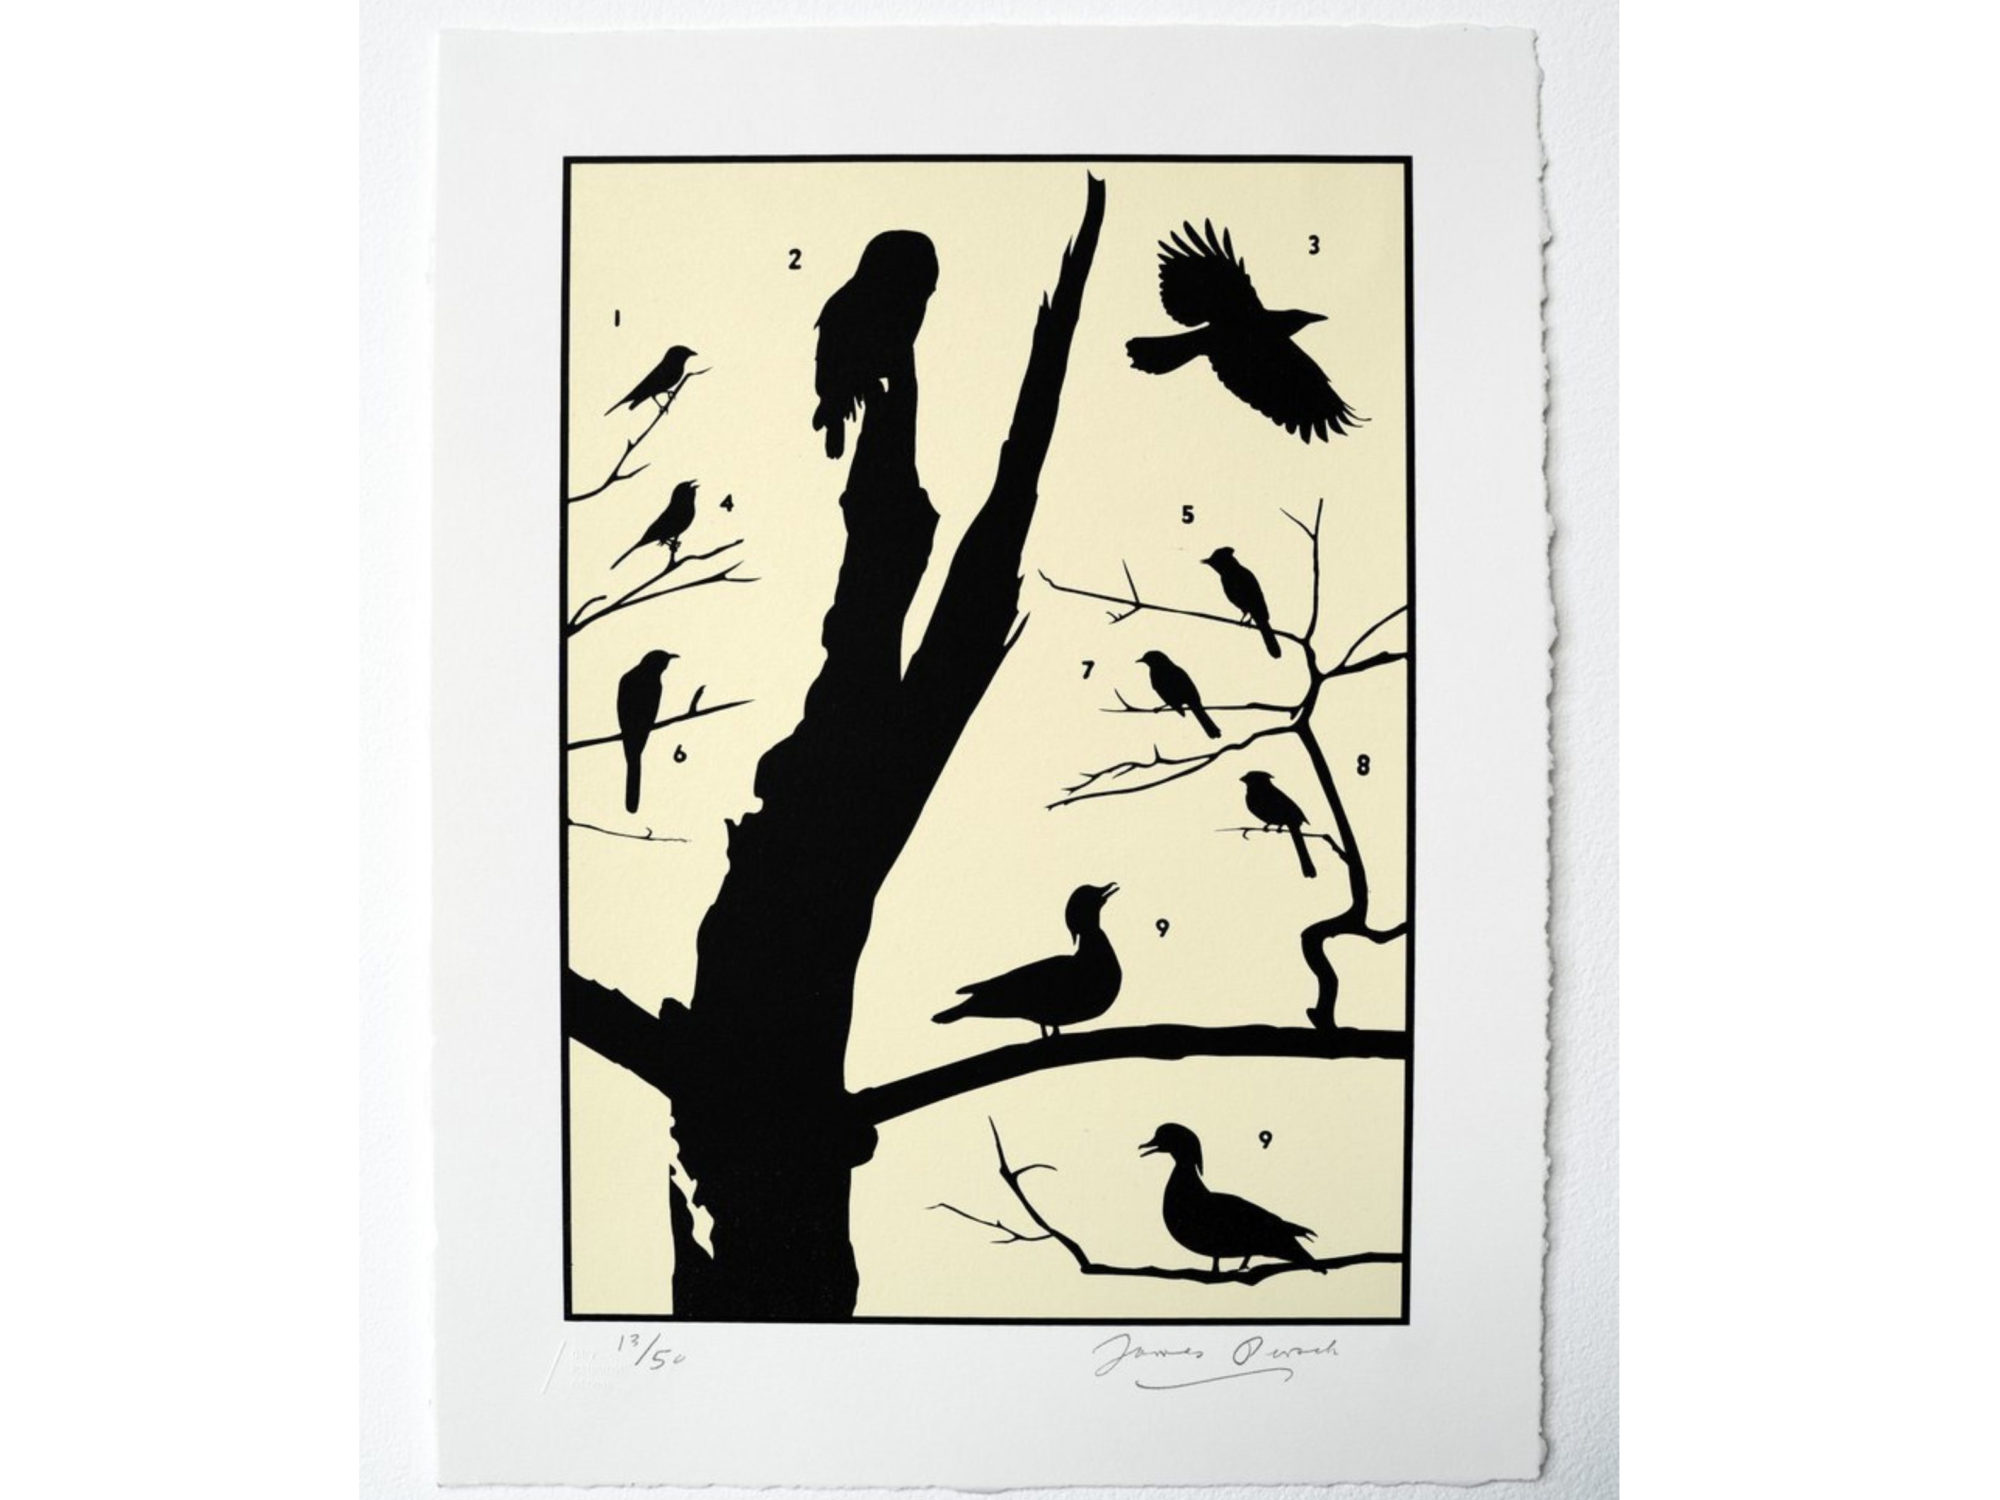 Print with black silhouette of tree truck and birds against a cream colored background.